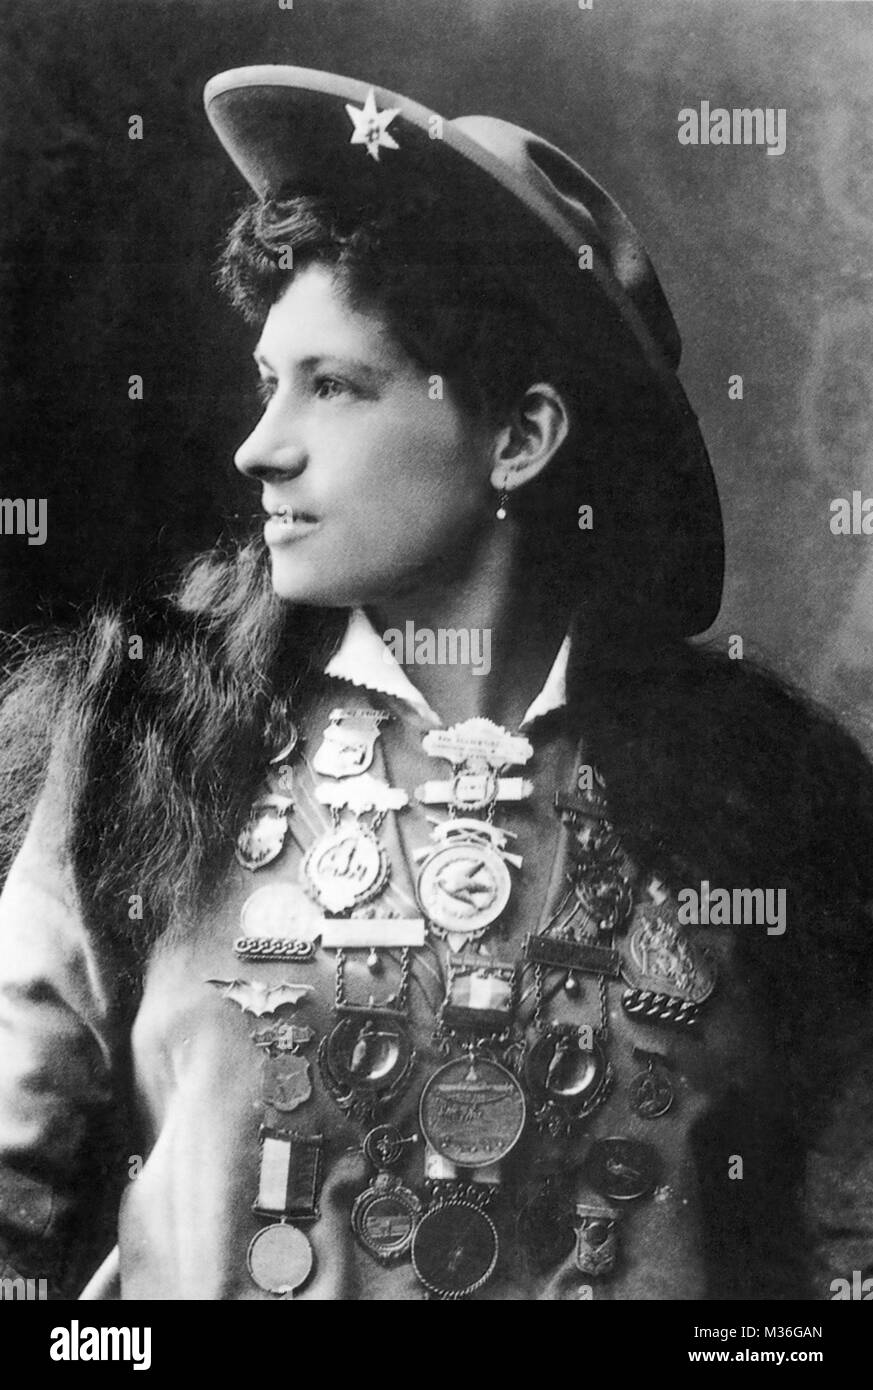 ANNIE OAKLEY (1860-1926) American exhibition sharpshooter - Stock Image